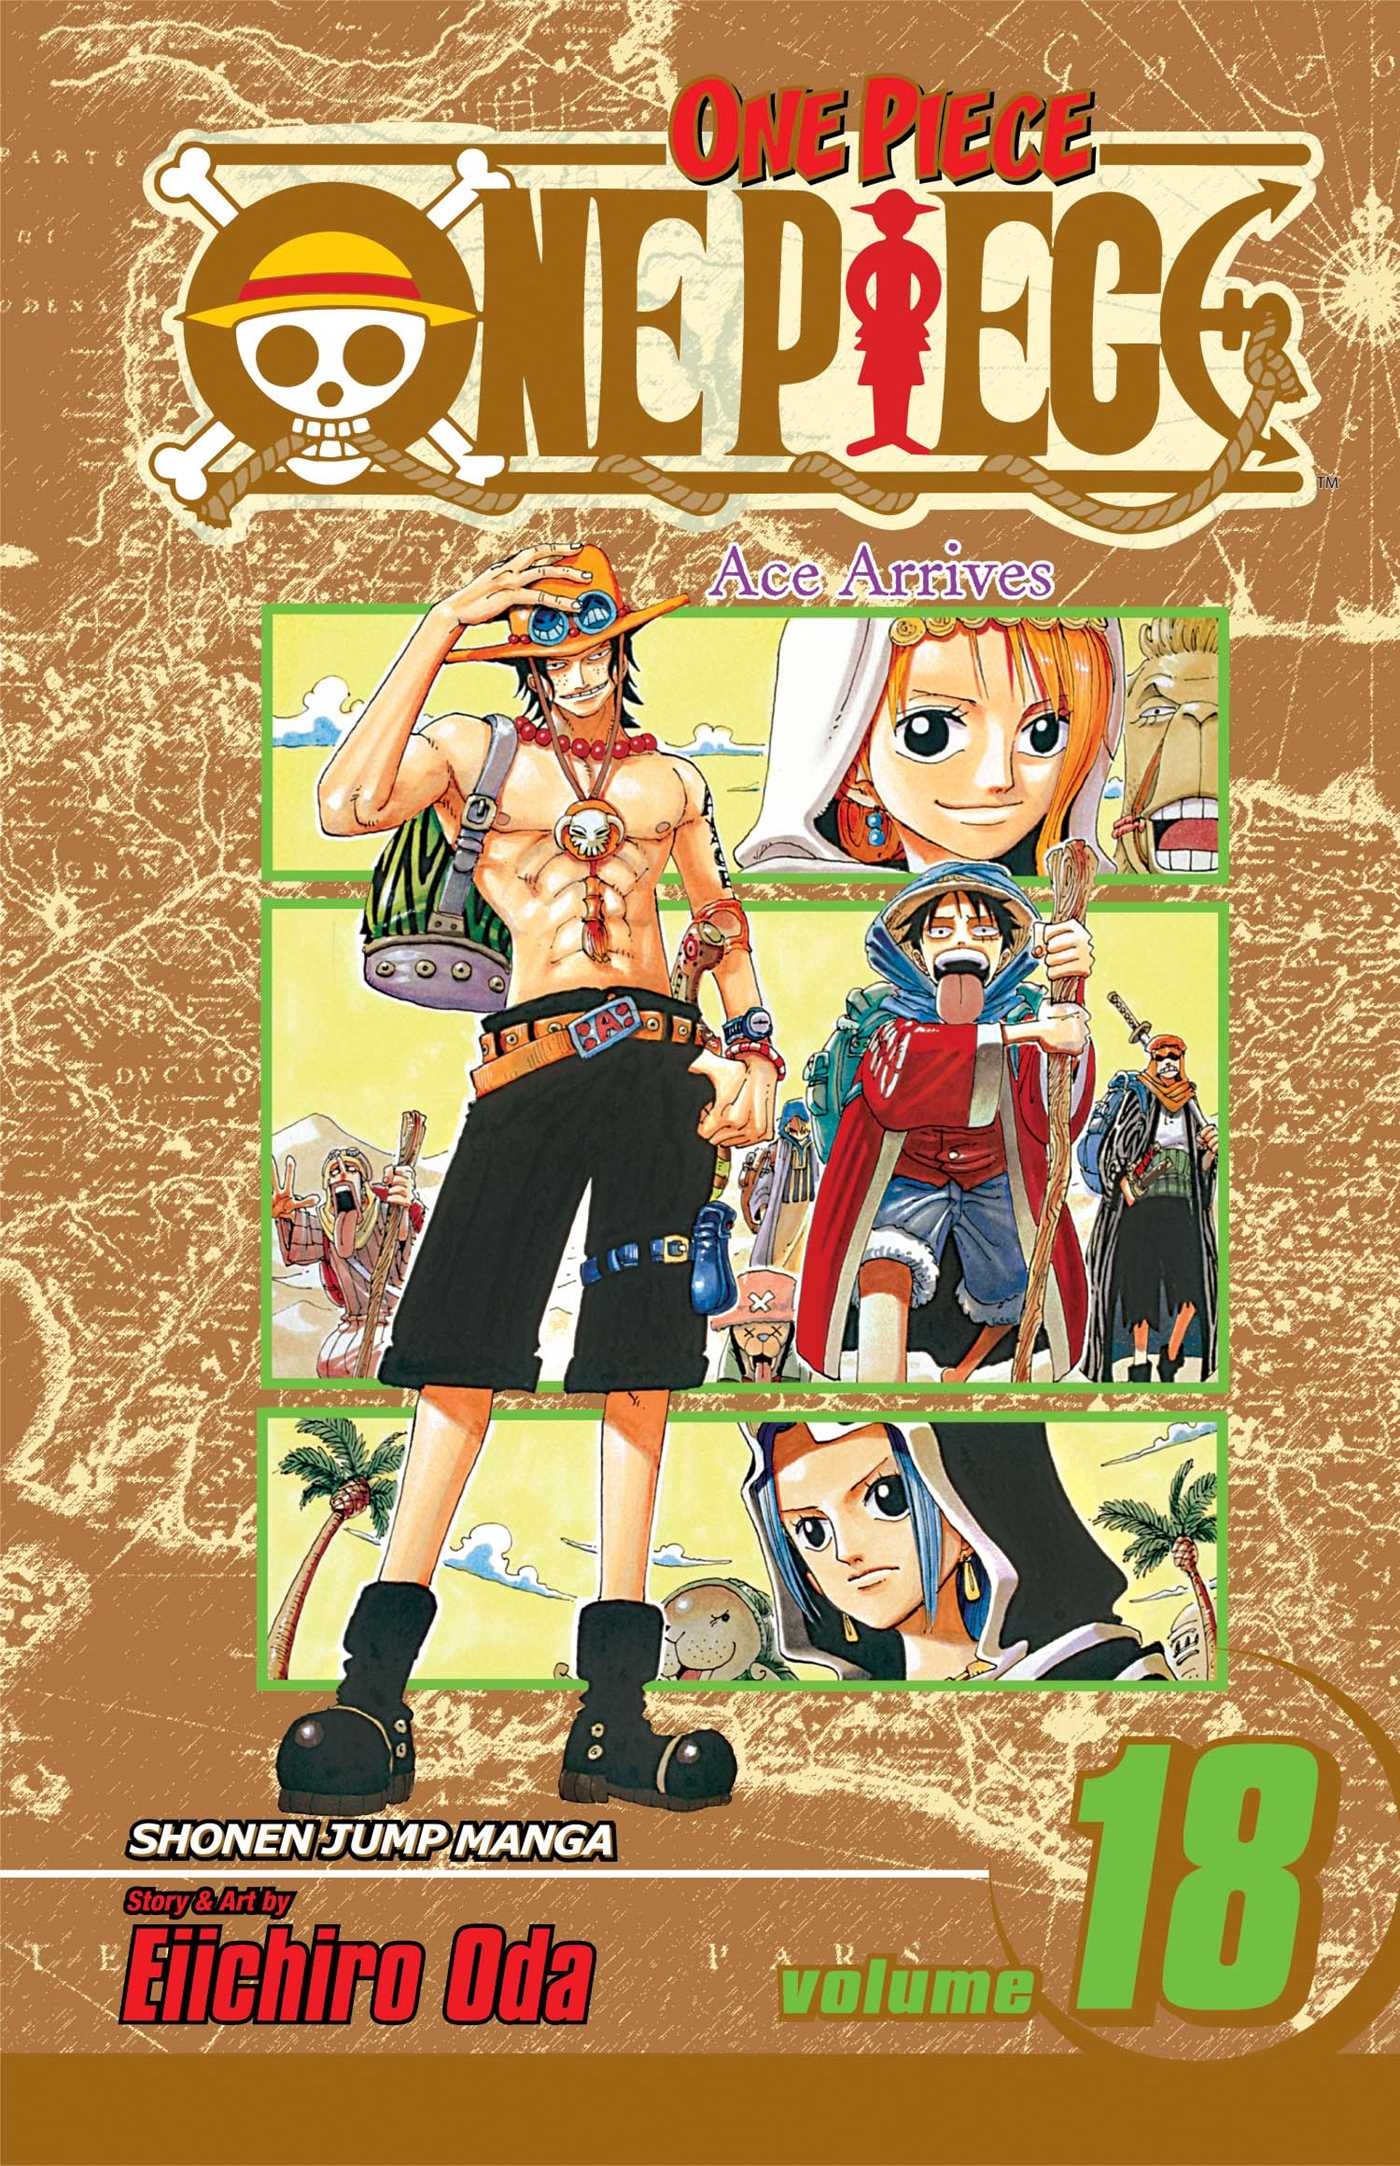 One-piece-vol-18-9781421515120_hr